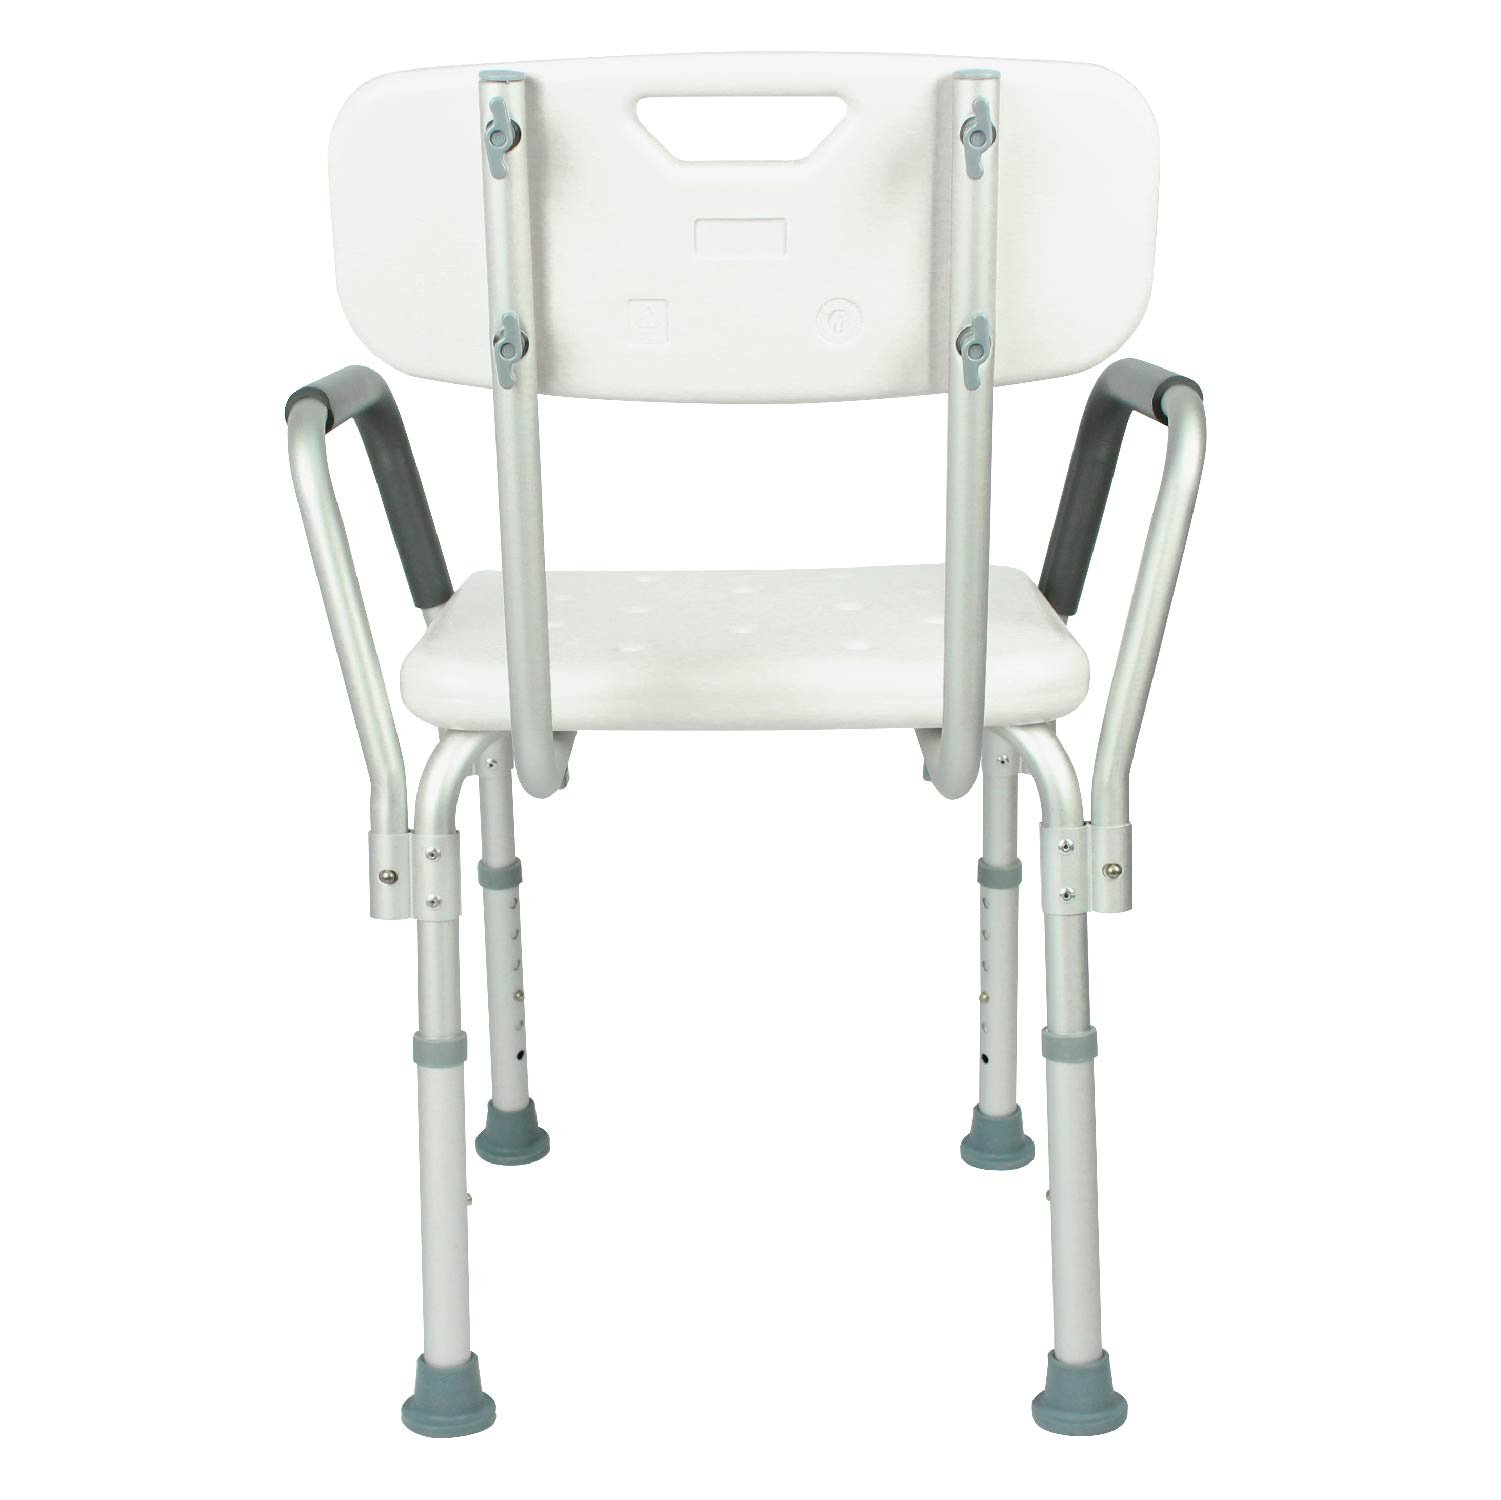 COMFORTABLE DESIGN  Best shower chair to sit comfortably and securely while  bathing  Ergonomic back support fits in most showers or bathtubs Shower Chair with Back by Vive   Bathtub Chair w  Arms for  . Disabled Bathtub Chairs. Home Design Ideas